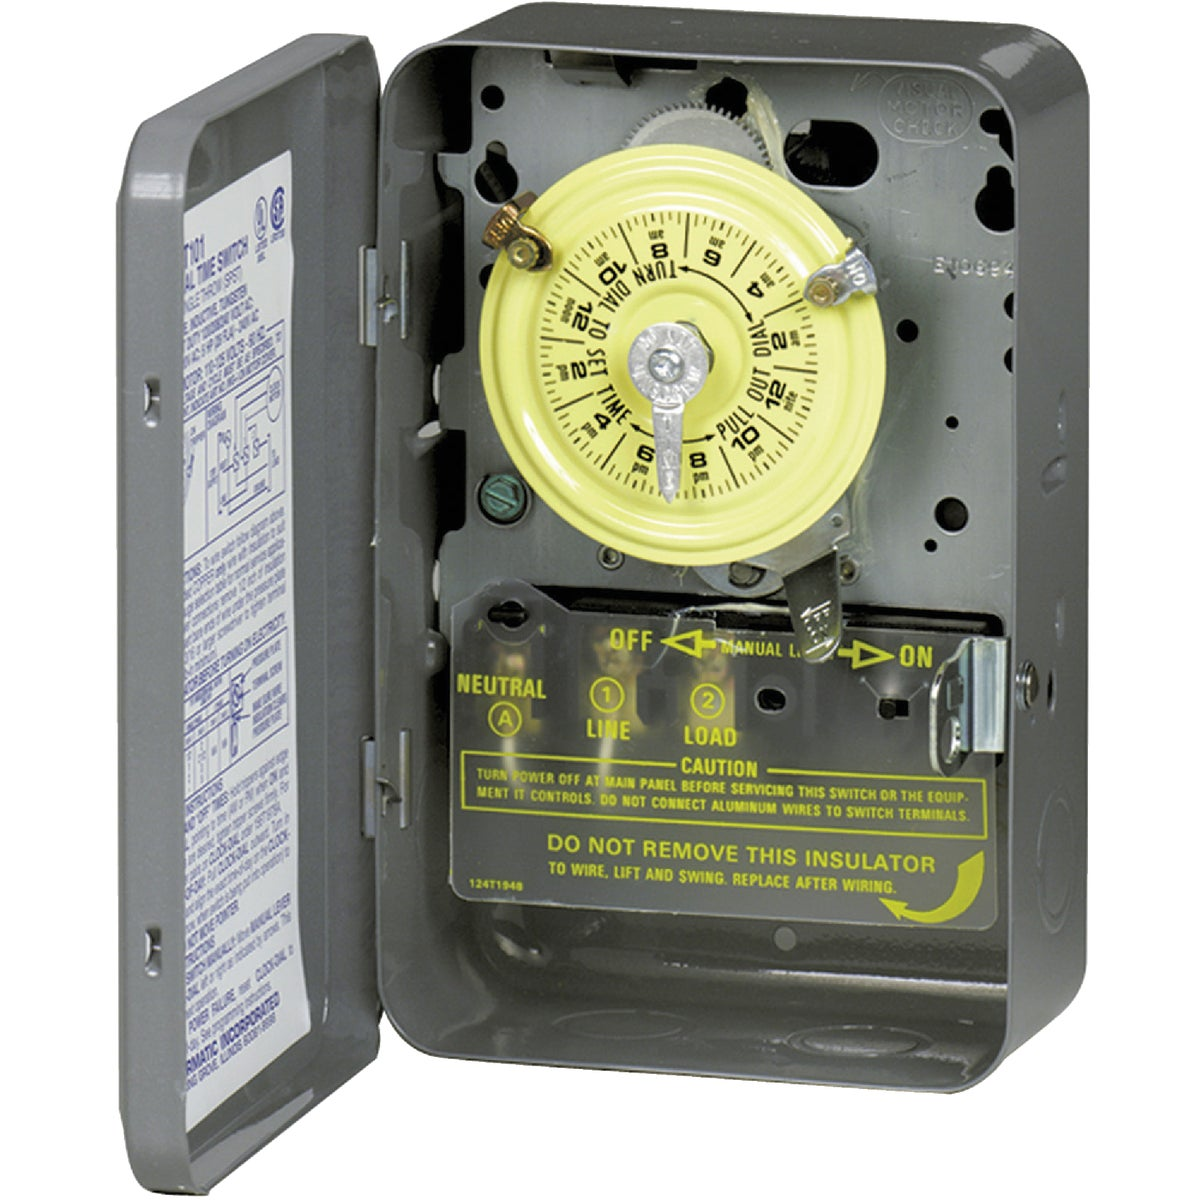 125V DPST TIME SWITCH - T103 by Intermatic Inc